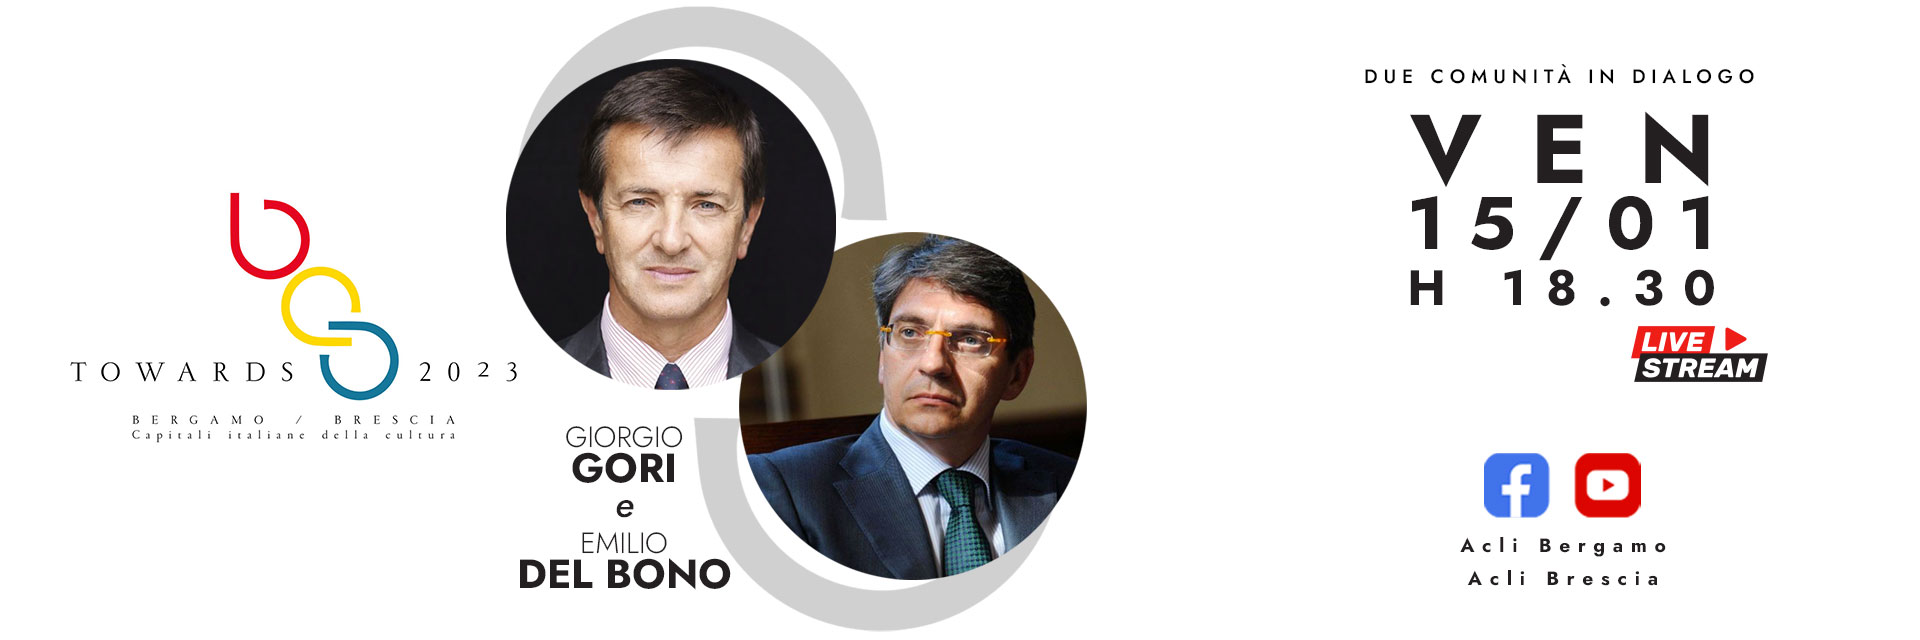 TOWARDS 2023: Giorgio Gori e Emilio Del Bono in dialogo